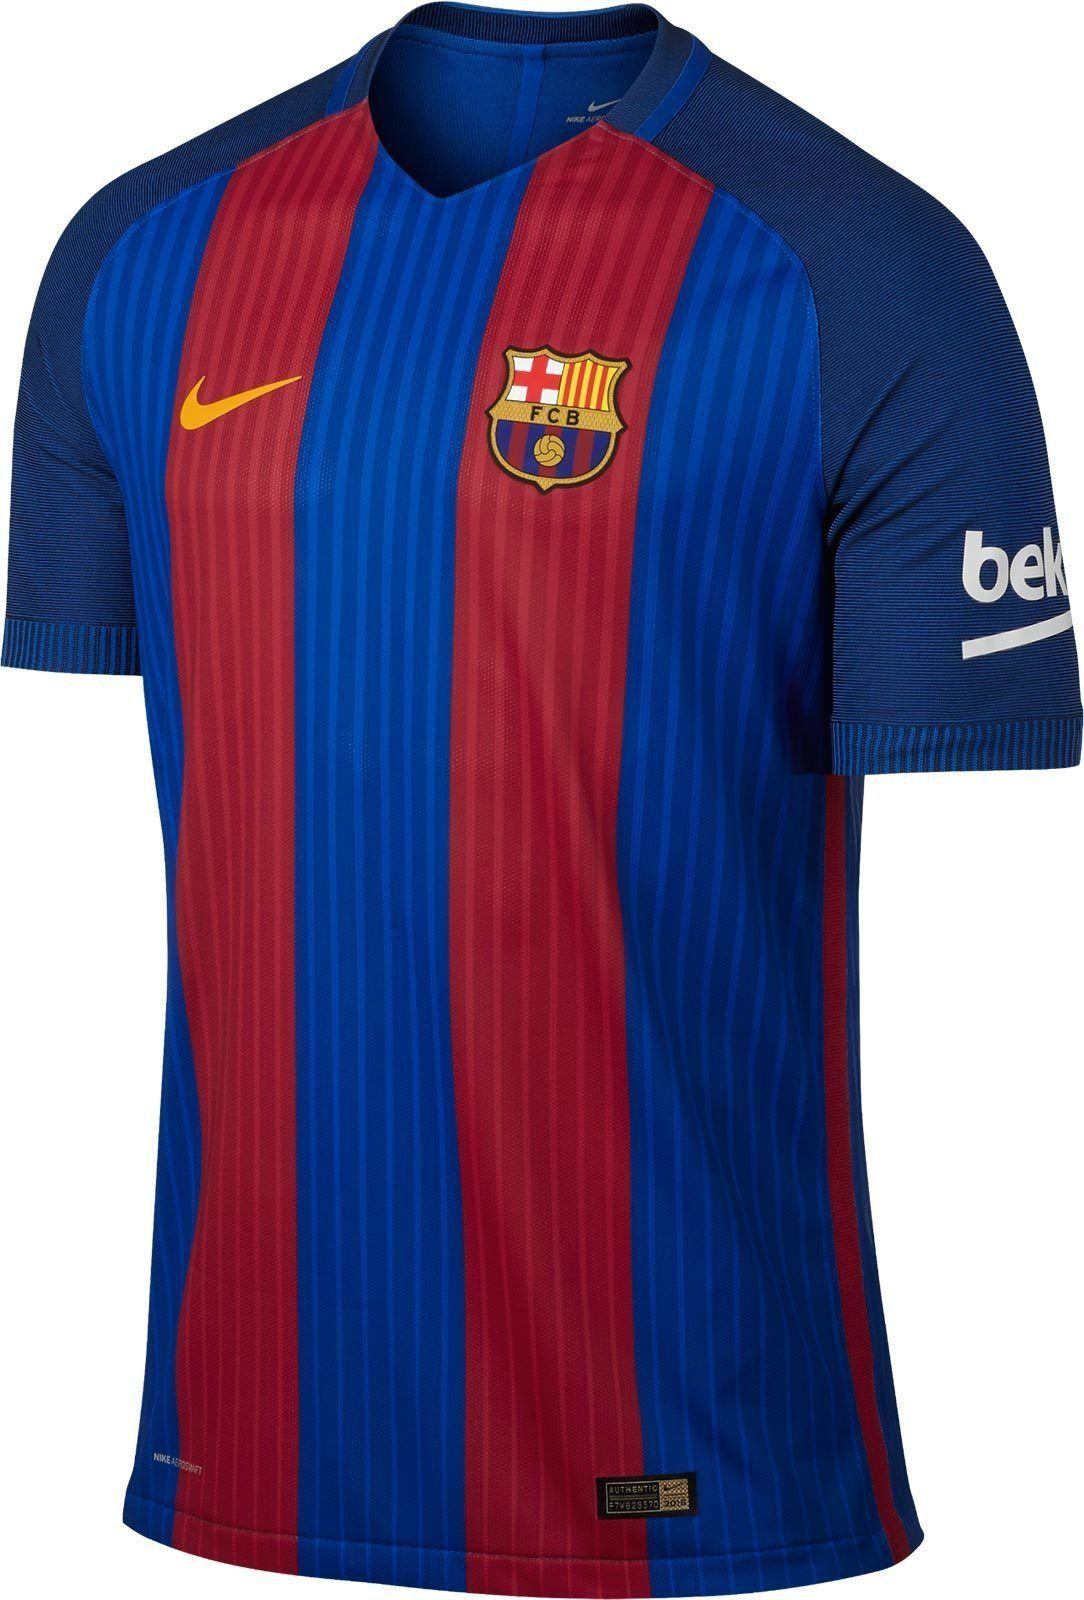 6dc4d7bf138 Nike fc barcelona authentic vapor match home jersey 2016 17